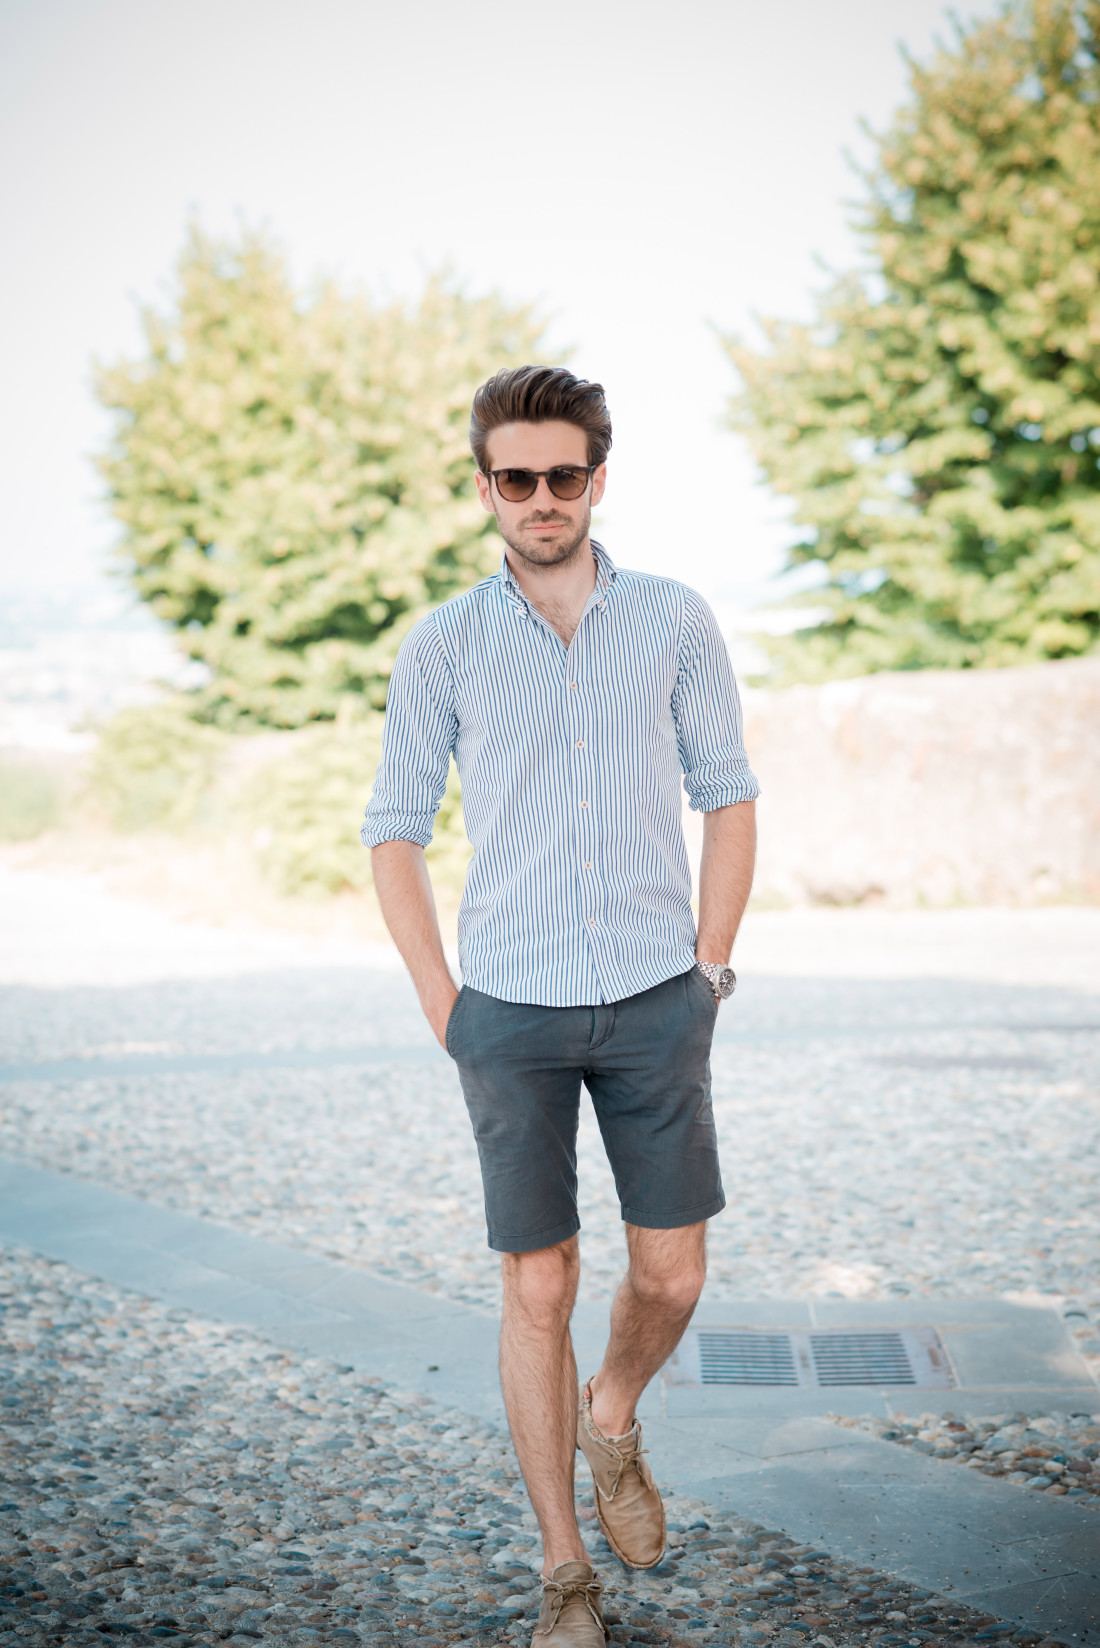 Top 5 Summer Fashion Tips For Men Online Styling Service For Men And Women Clothing Subscription